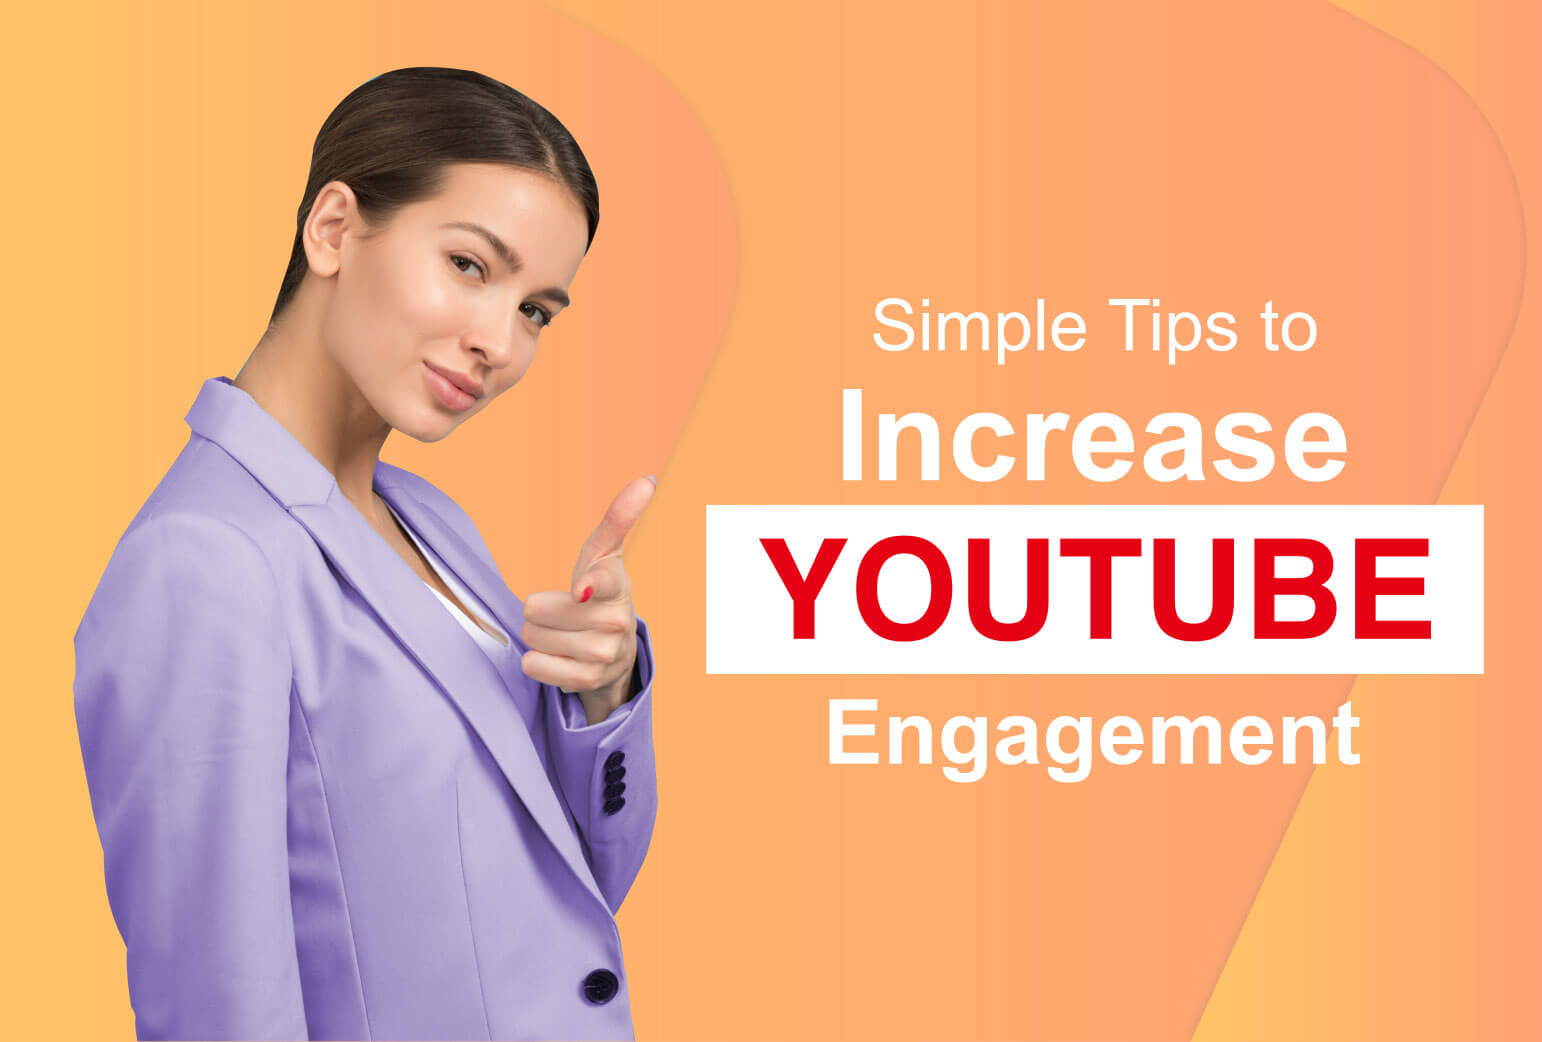 simple Tips to Increase Your YouTube Engagement by 200%